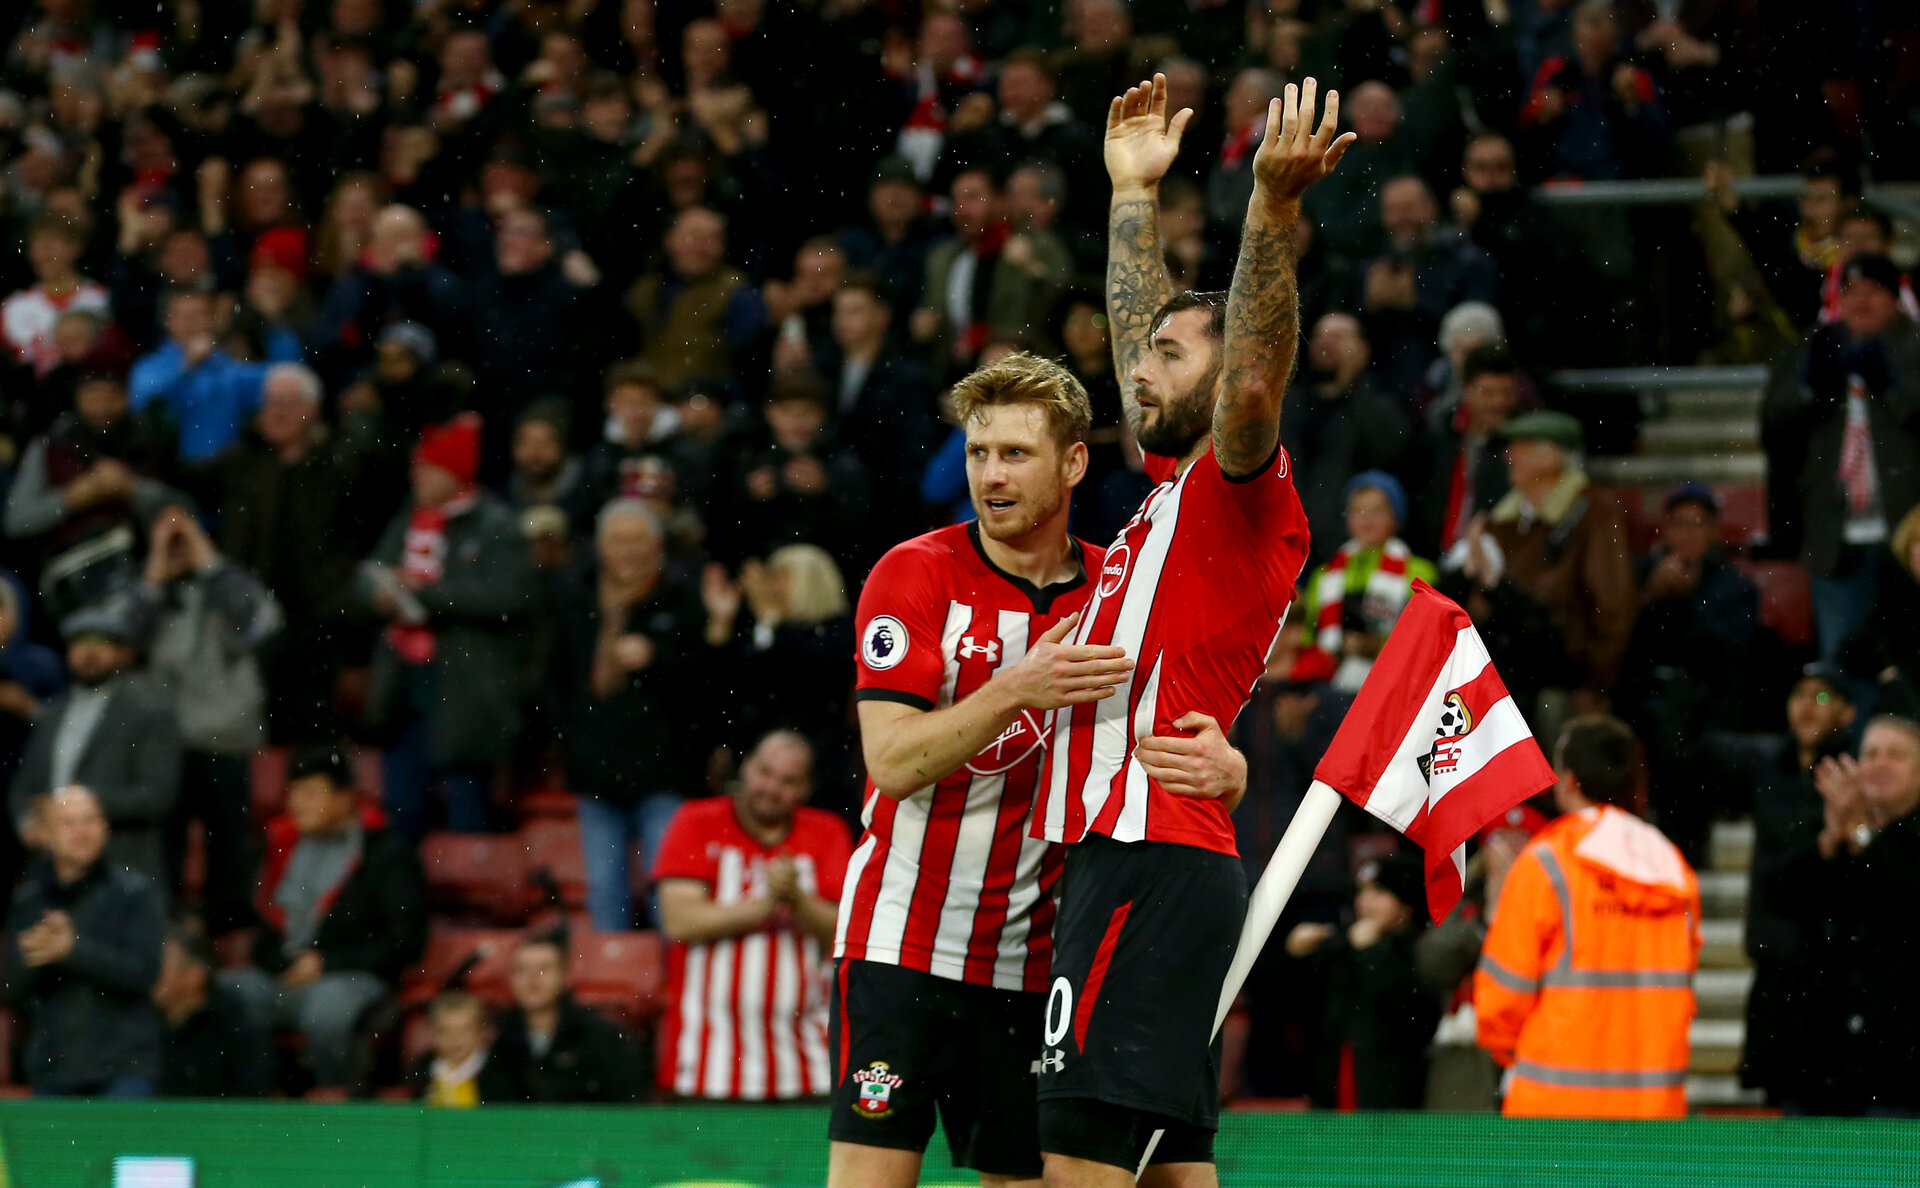 SOUTHAMPTON, ENGLAND - DECEMBER 16: Charlie Austin(R) of Southampton celebrates scoring with team mate Stuart Armstrong(L) during the Premier League match between Southampton FC and Arsenal FC at St Mary's Stadium on December 15, 2018 in Southampton, United Kingdom. (Photo by Matt Watson/Southampton FC via Getty Images)